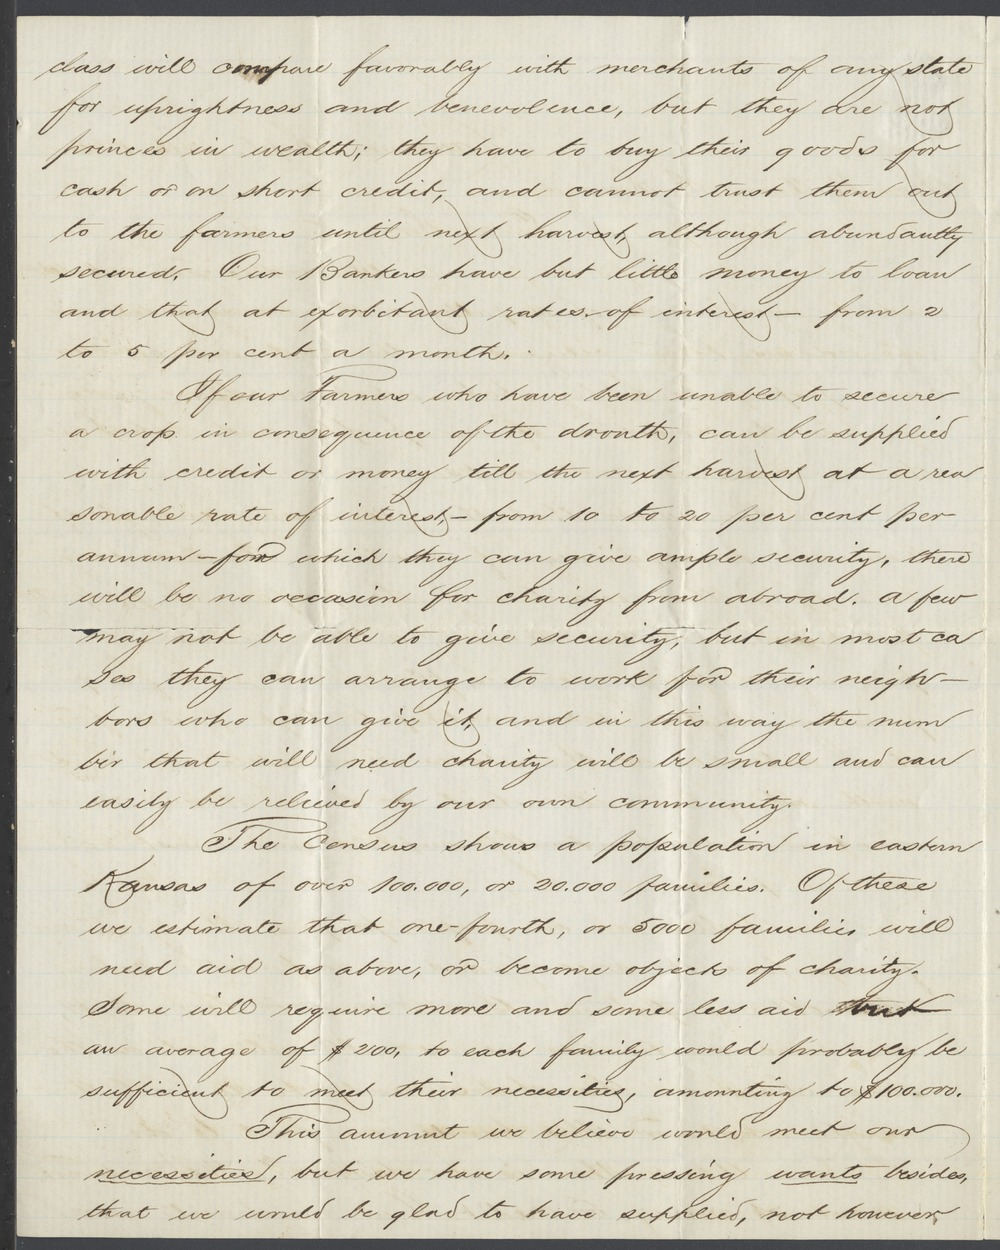 Charles Robinson and James M. Winchell to William H. Seward - 2